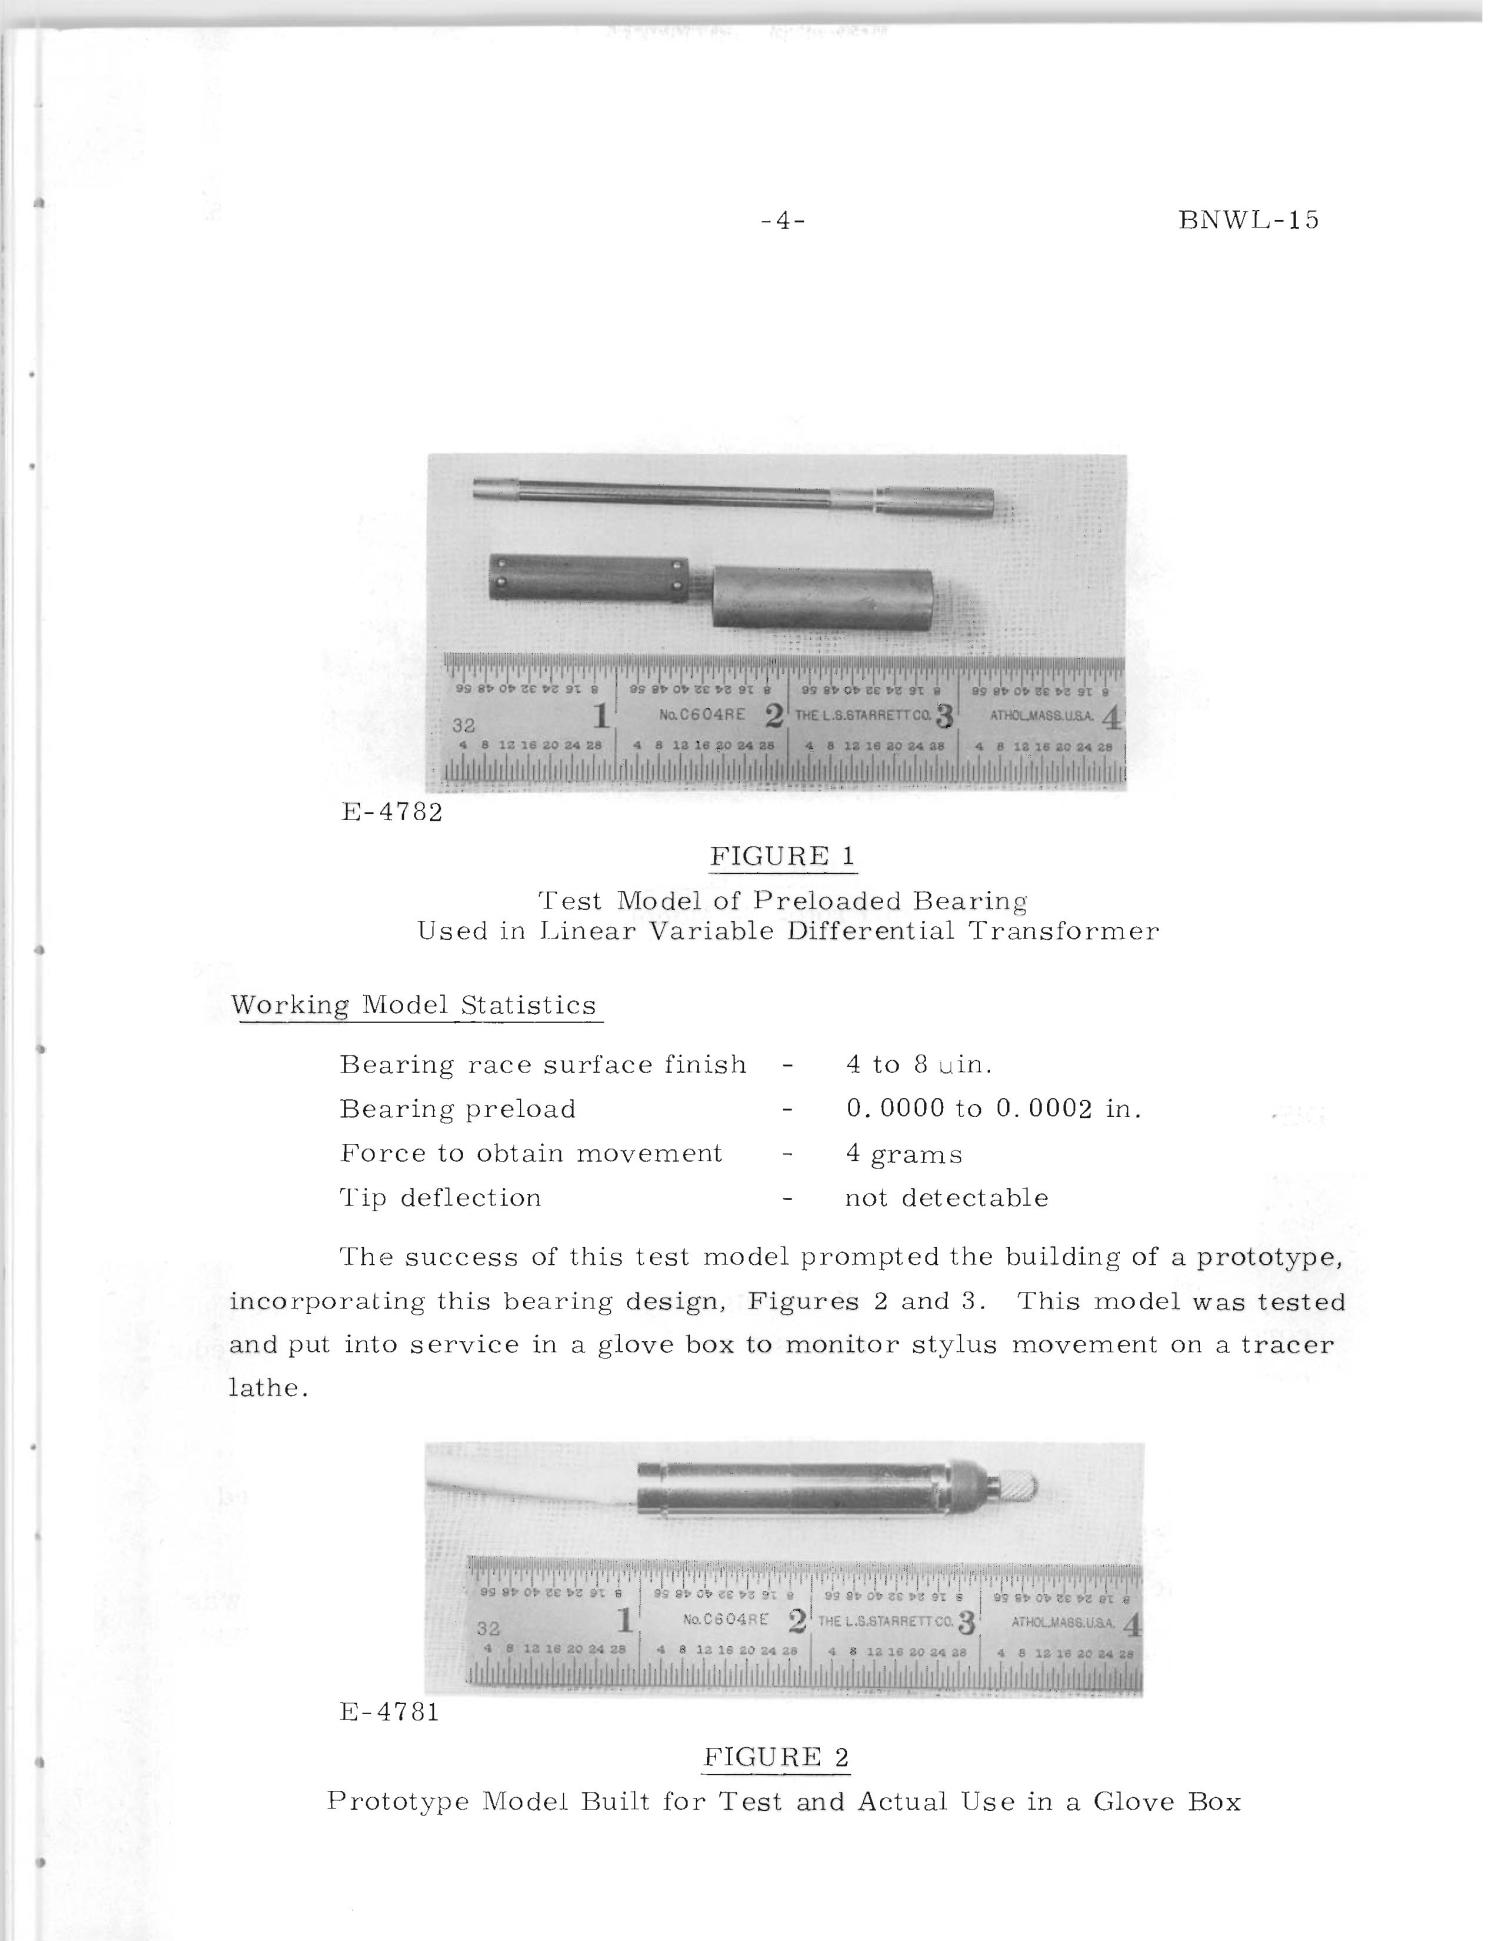 IMPROVED CARTRIDGE-TYPE LINEAR VARIABLE DIFFERENTIAL TRANSFORMER                                                                                                      [Sequence #]: 7 of 18